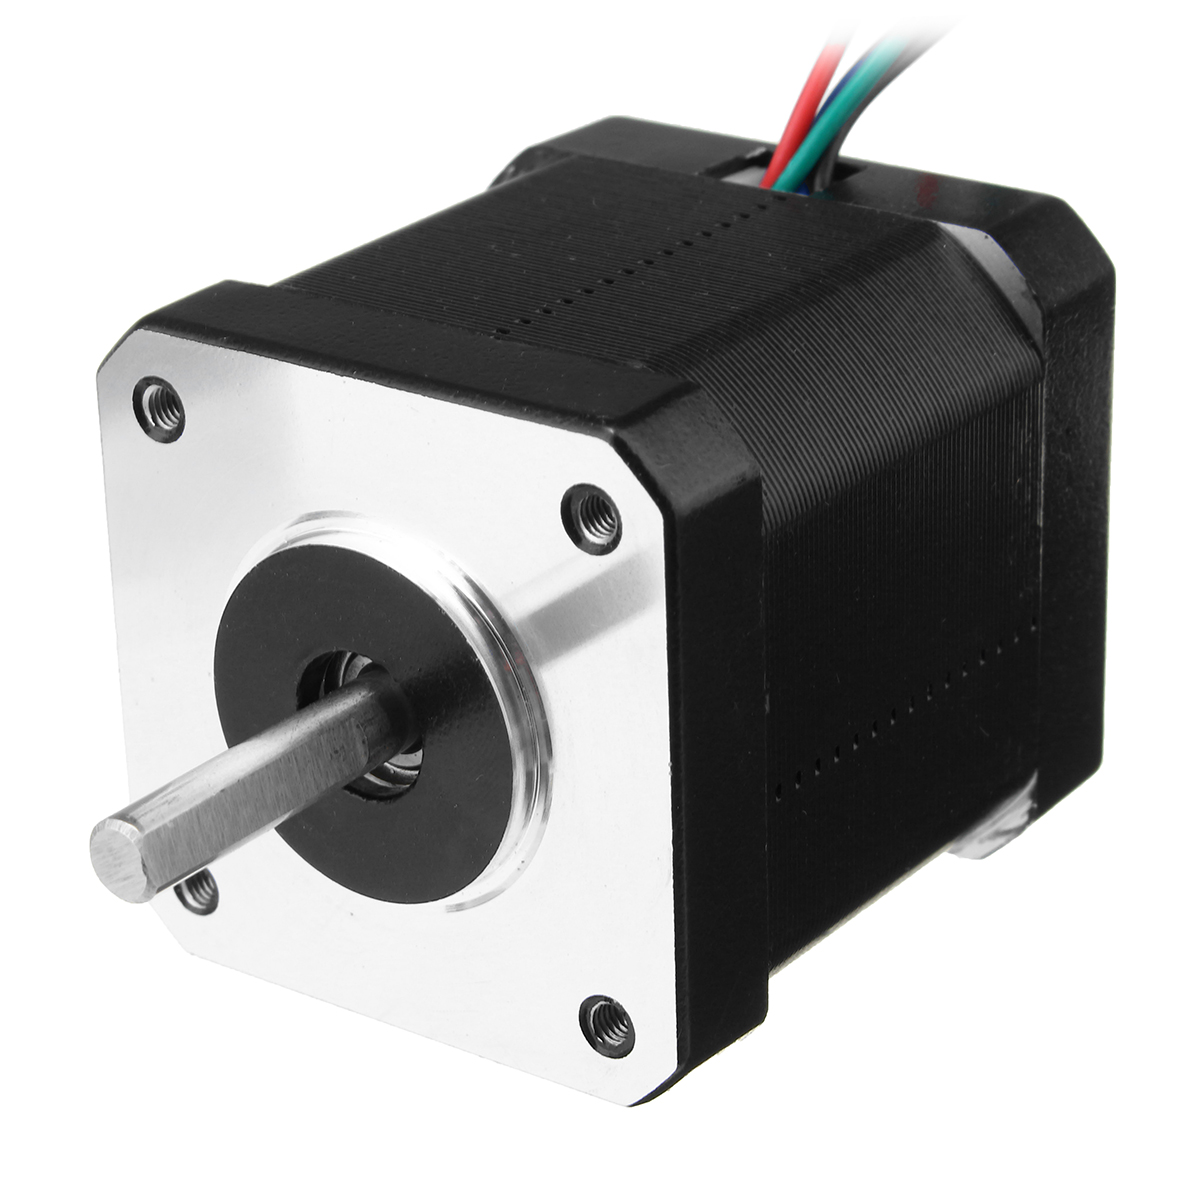 Nema17 59Ncm 2A 1.8°4-lead 48mm Stepper Motor For 3D Printer CNC